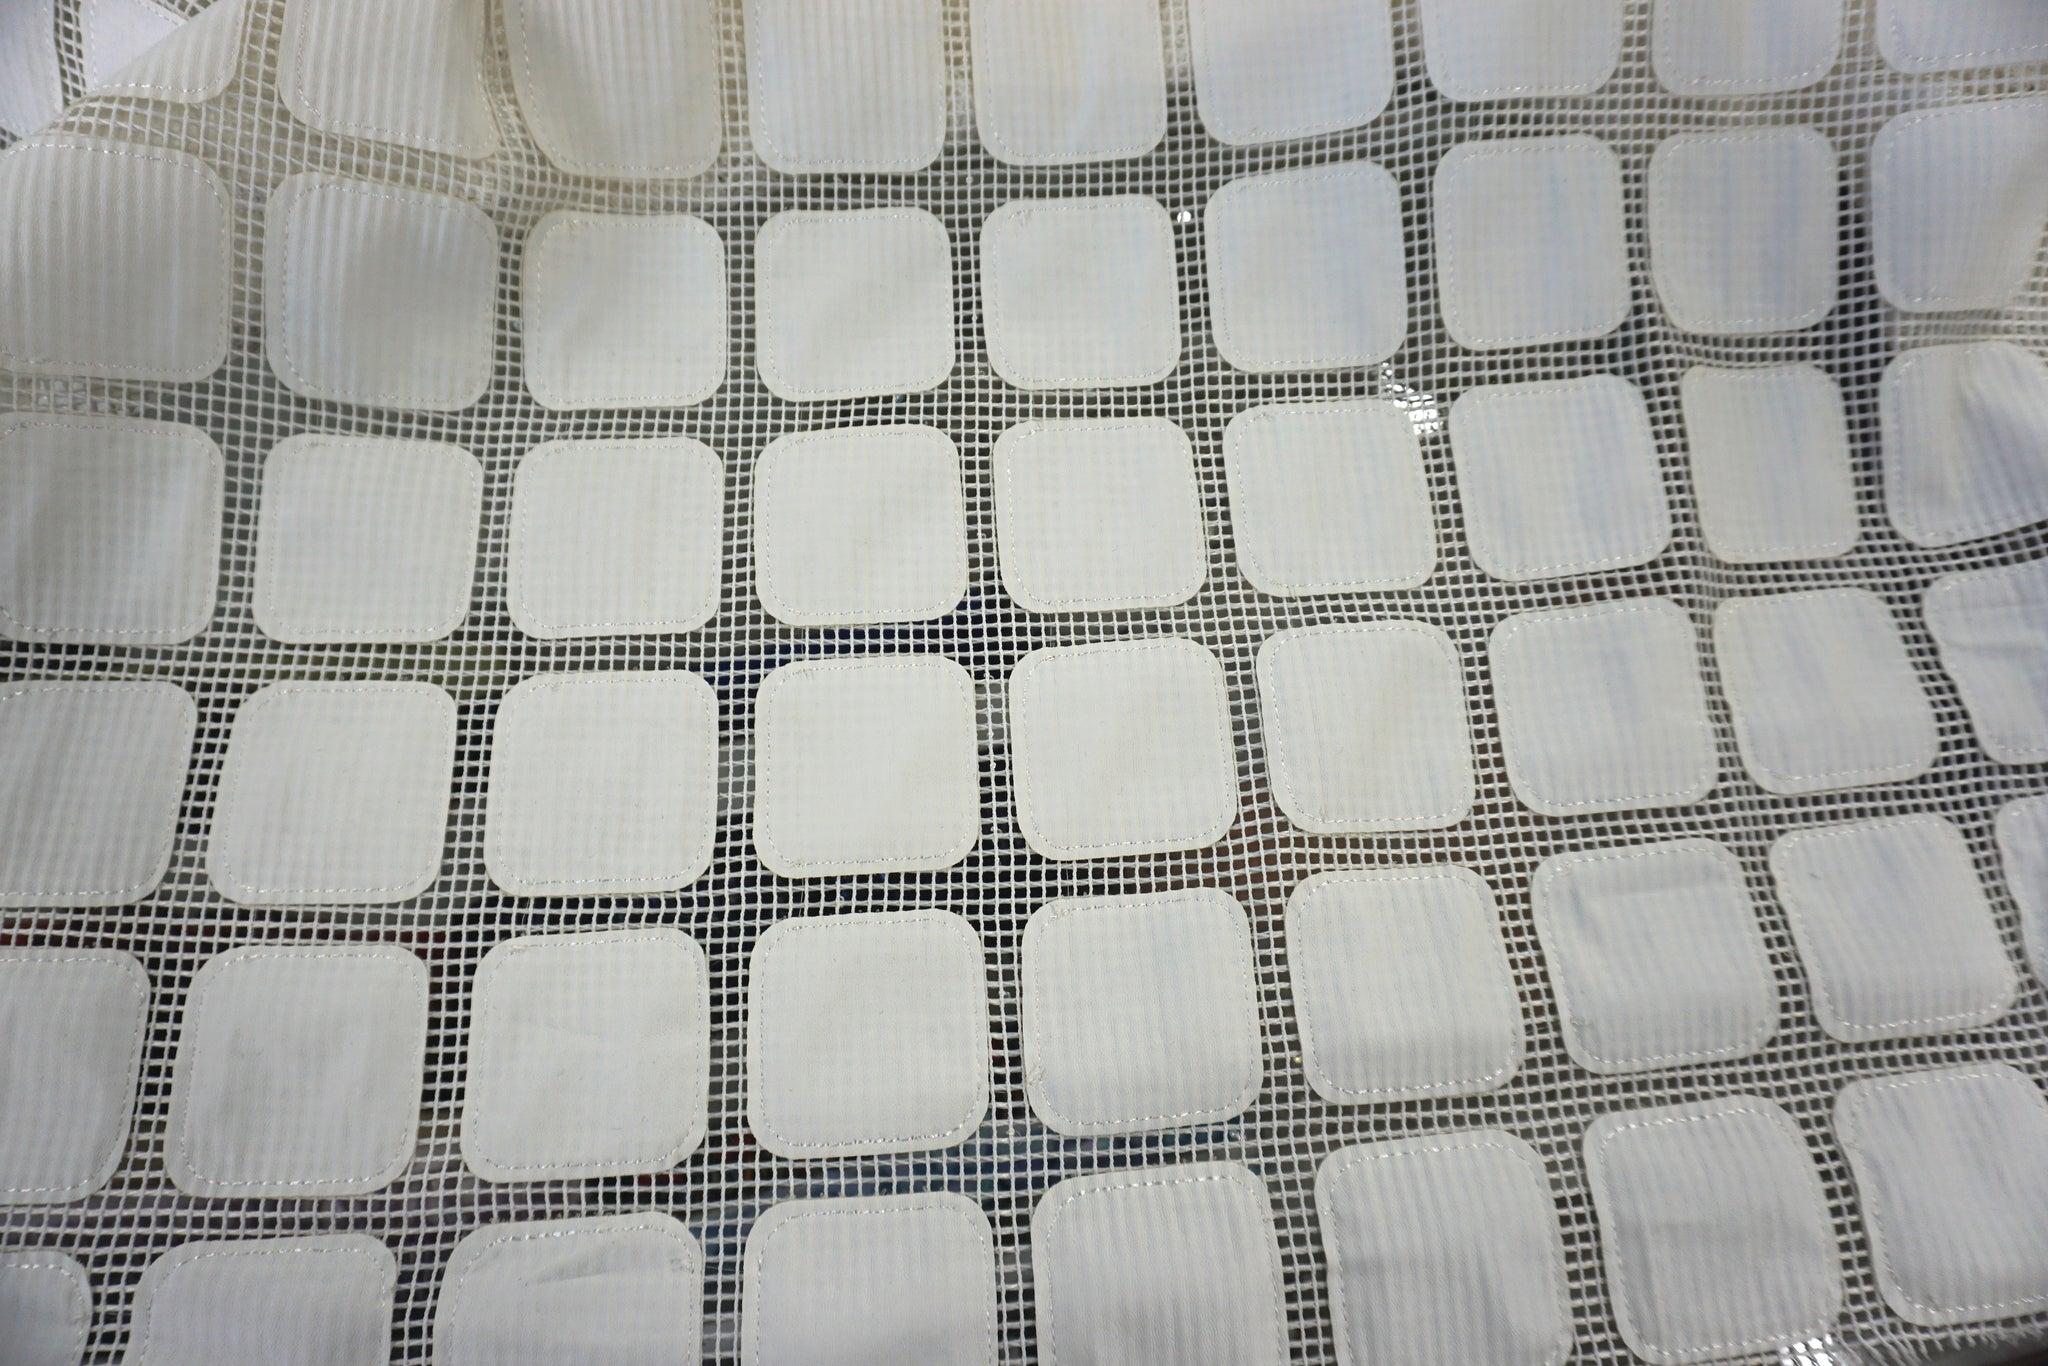 Off White Rounded Squares Appliquè on Mesh